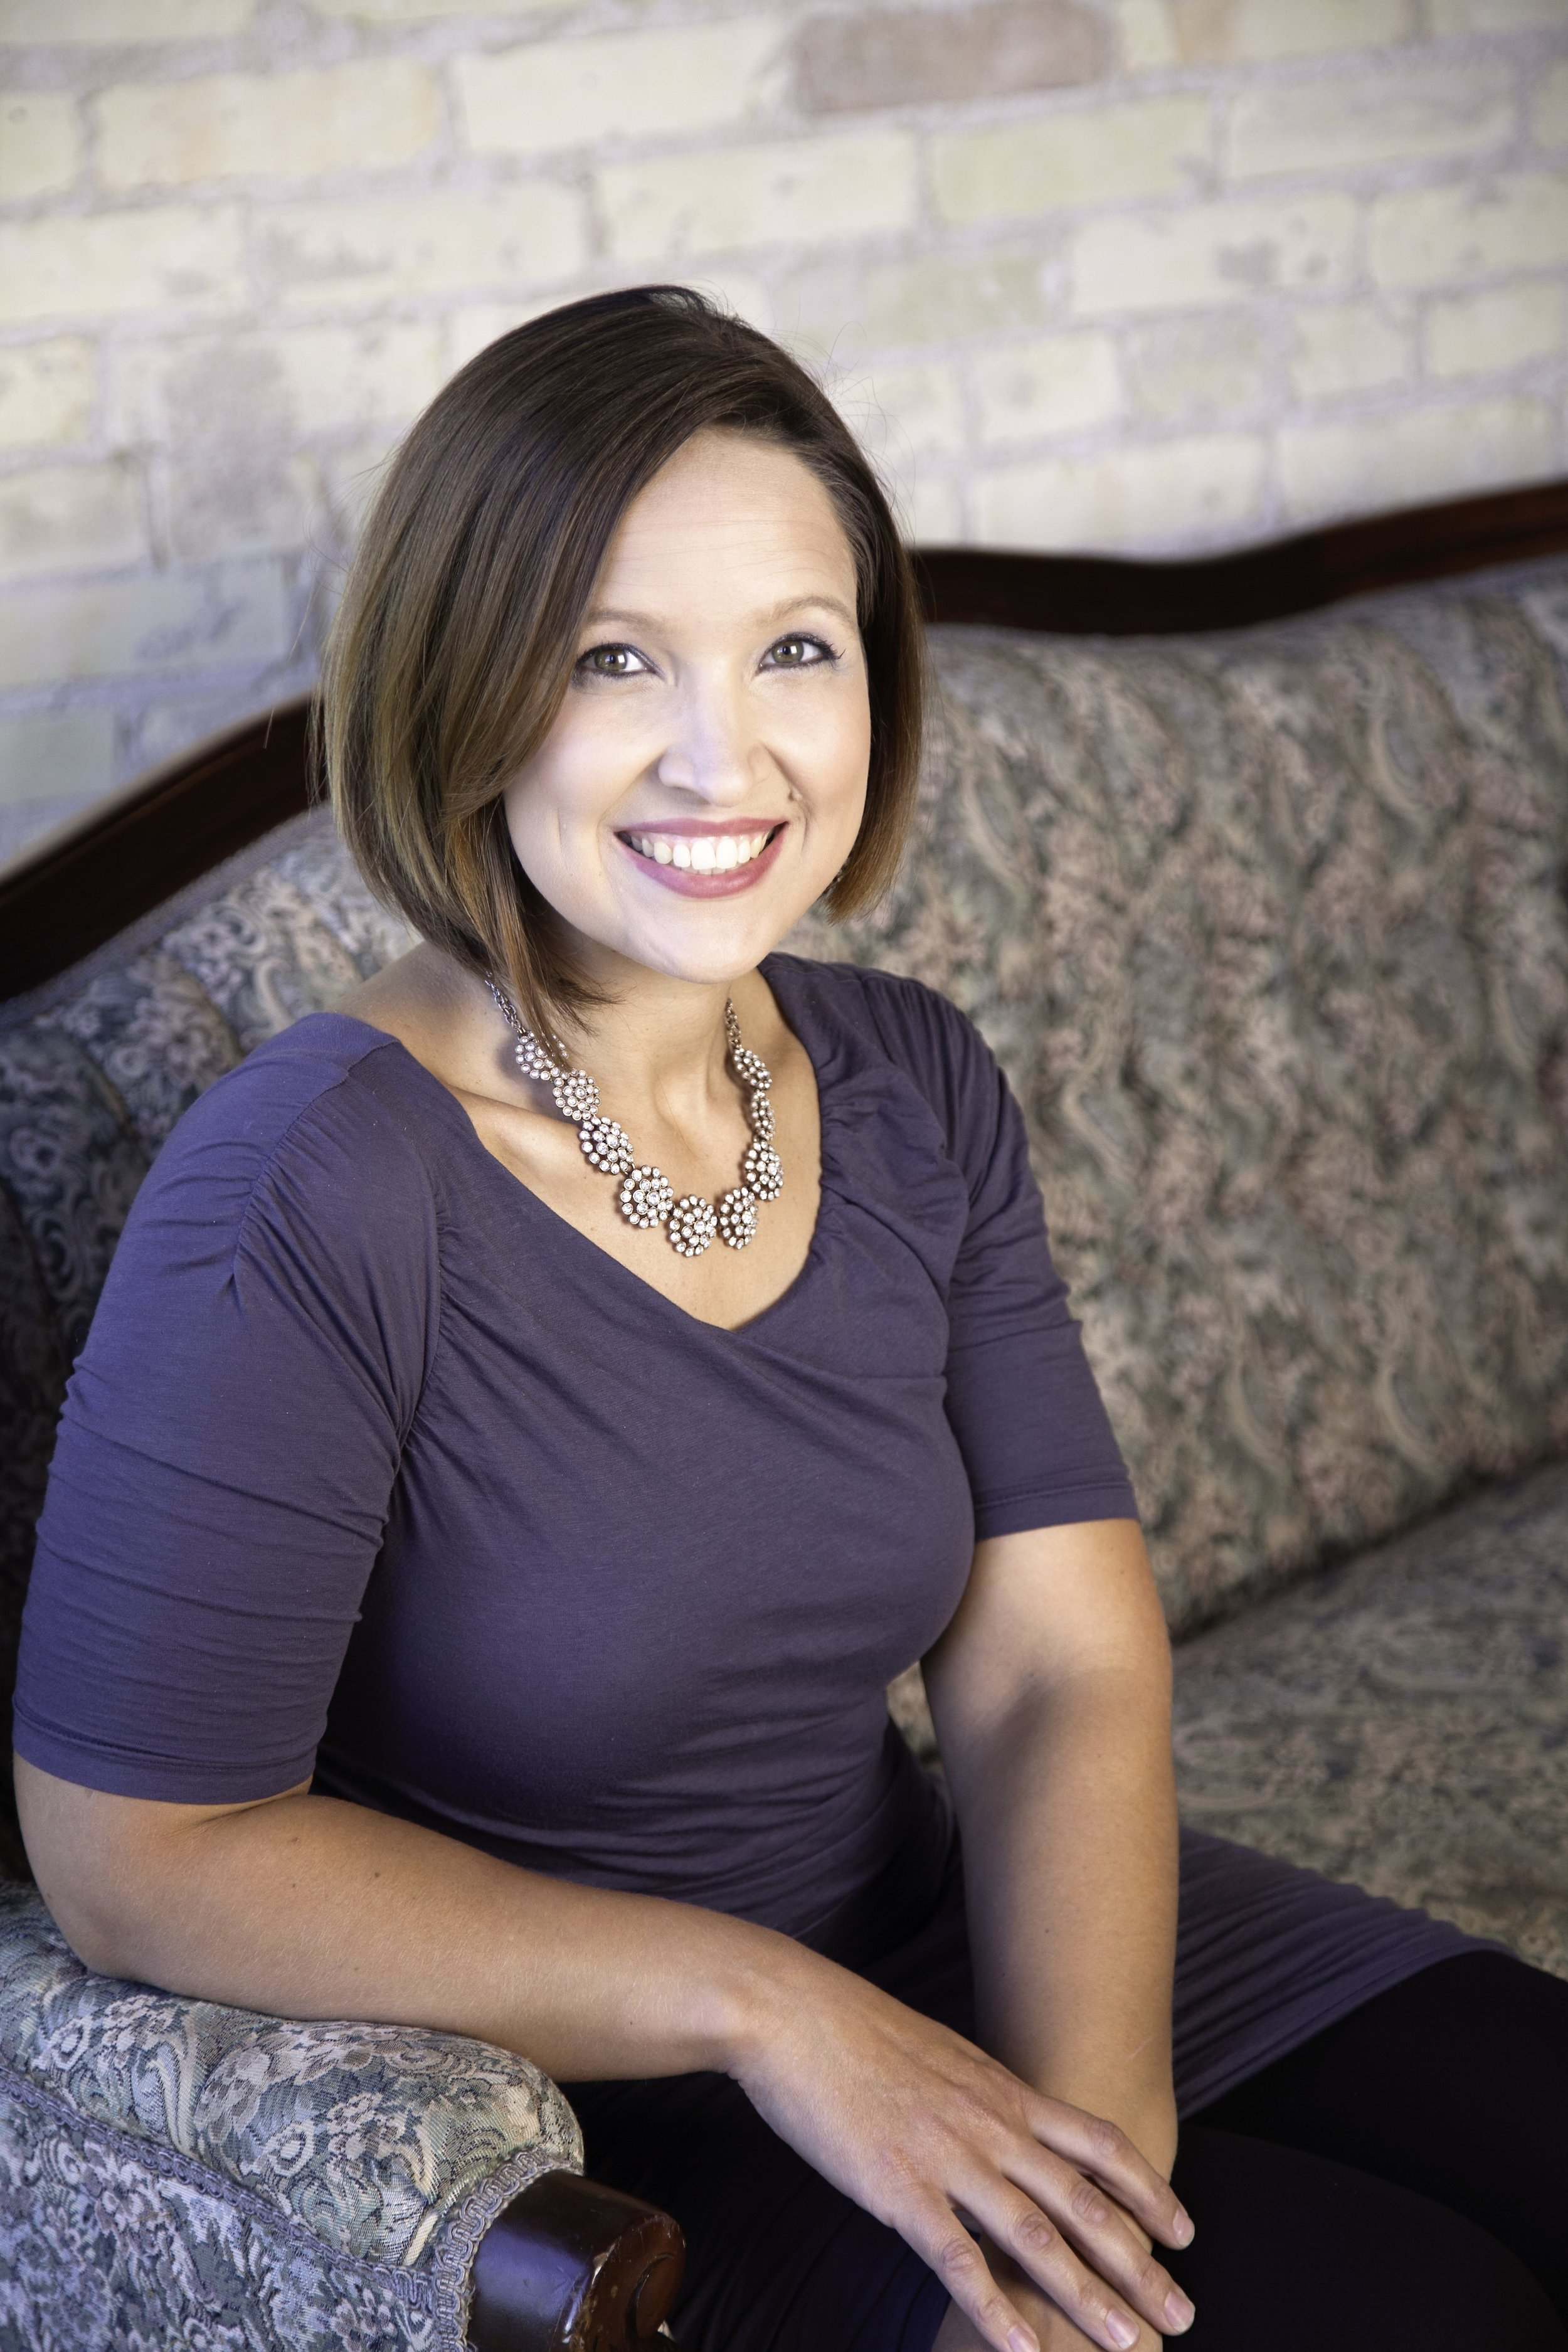 Kate Walski, Owner of 307 Events